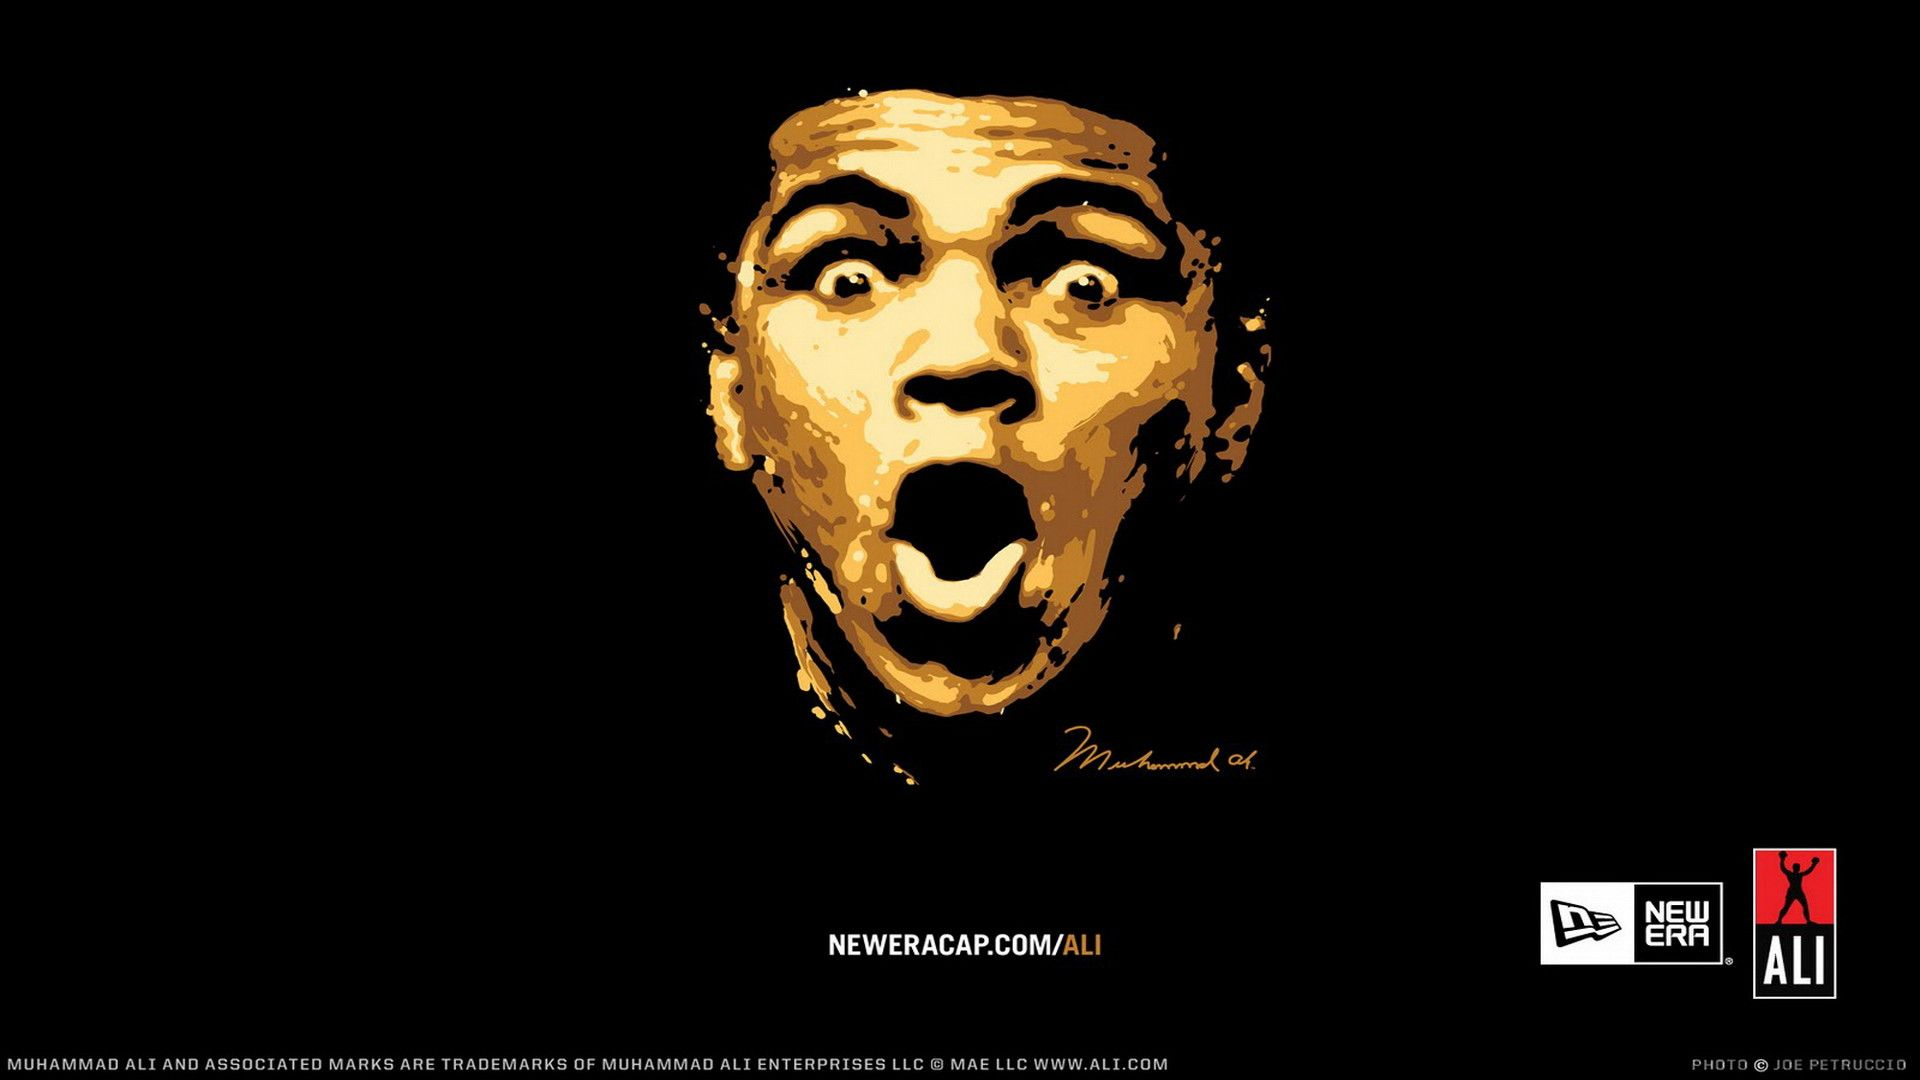 Muhammad Ali Wallpaper